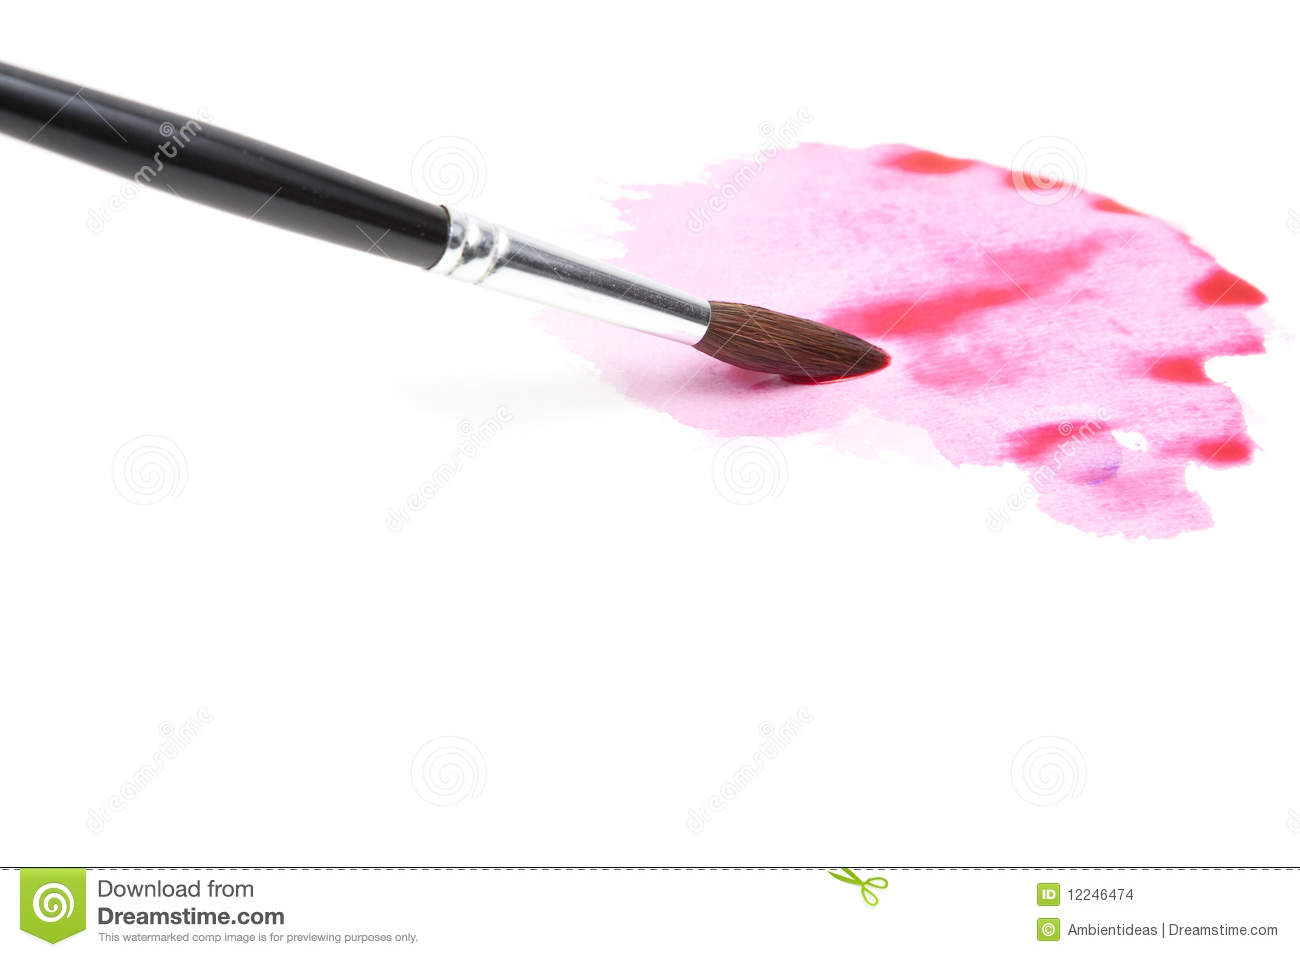 Watercolor Brush and Wet Paint in Pink and Red on White Background.